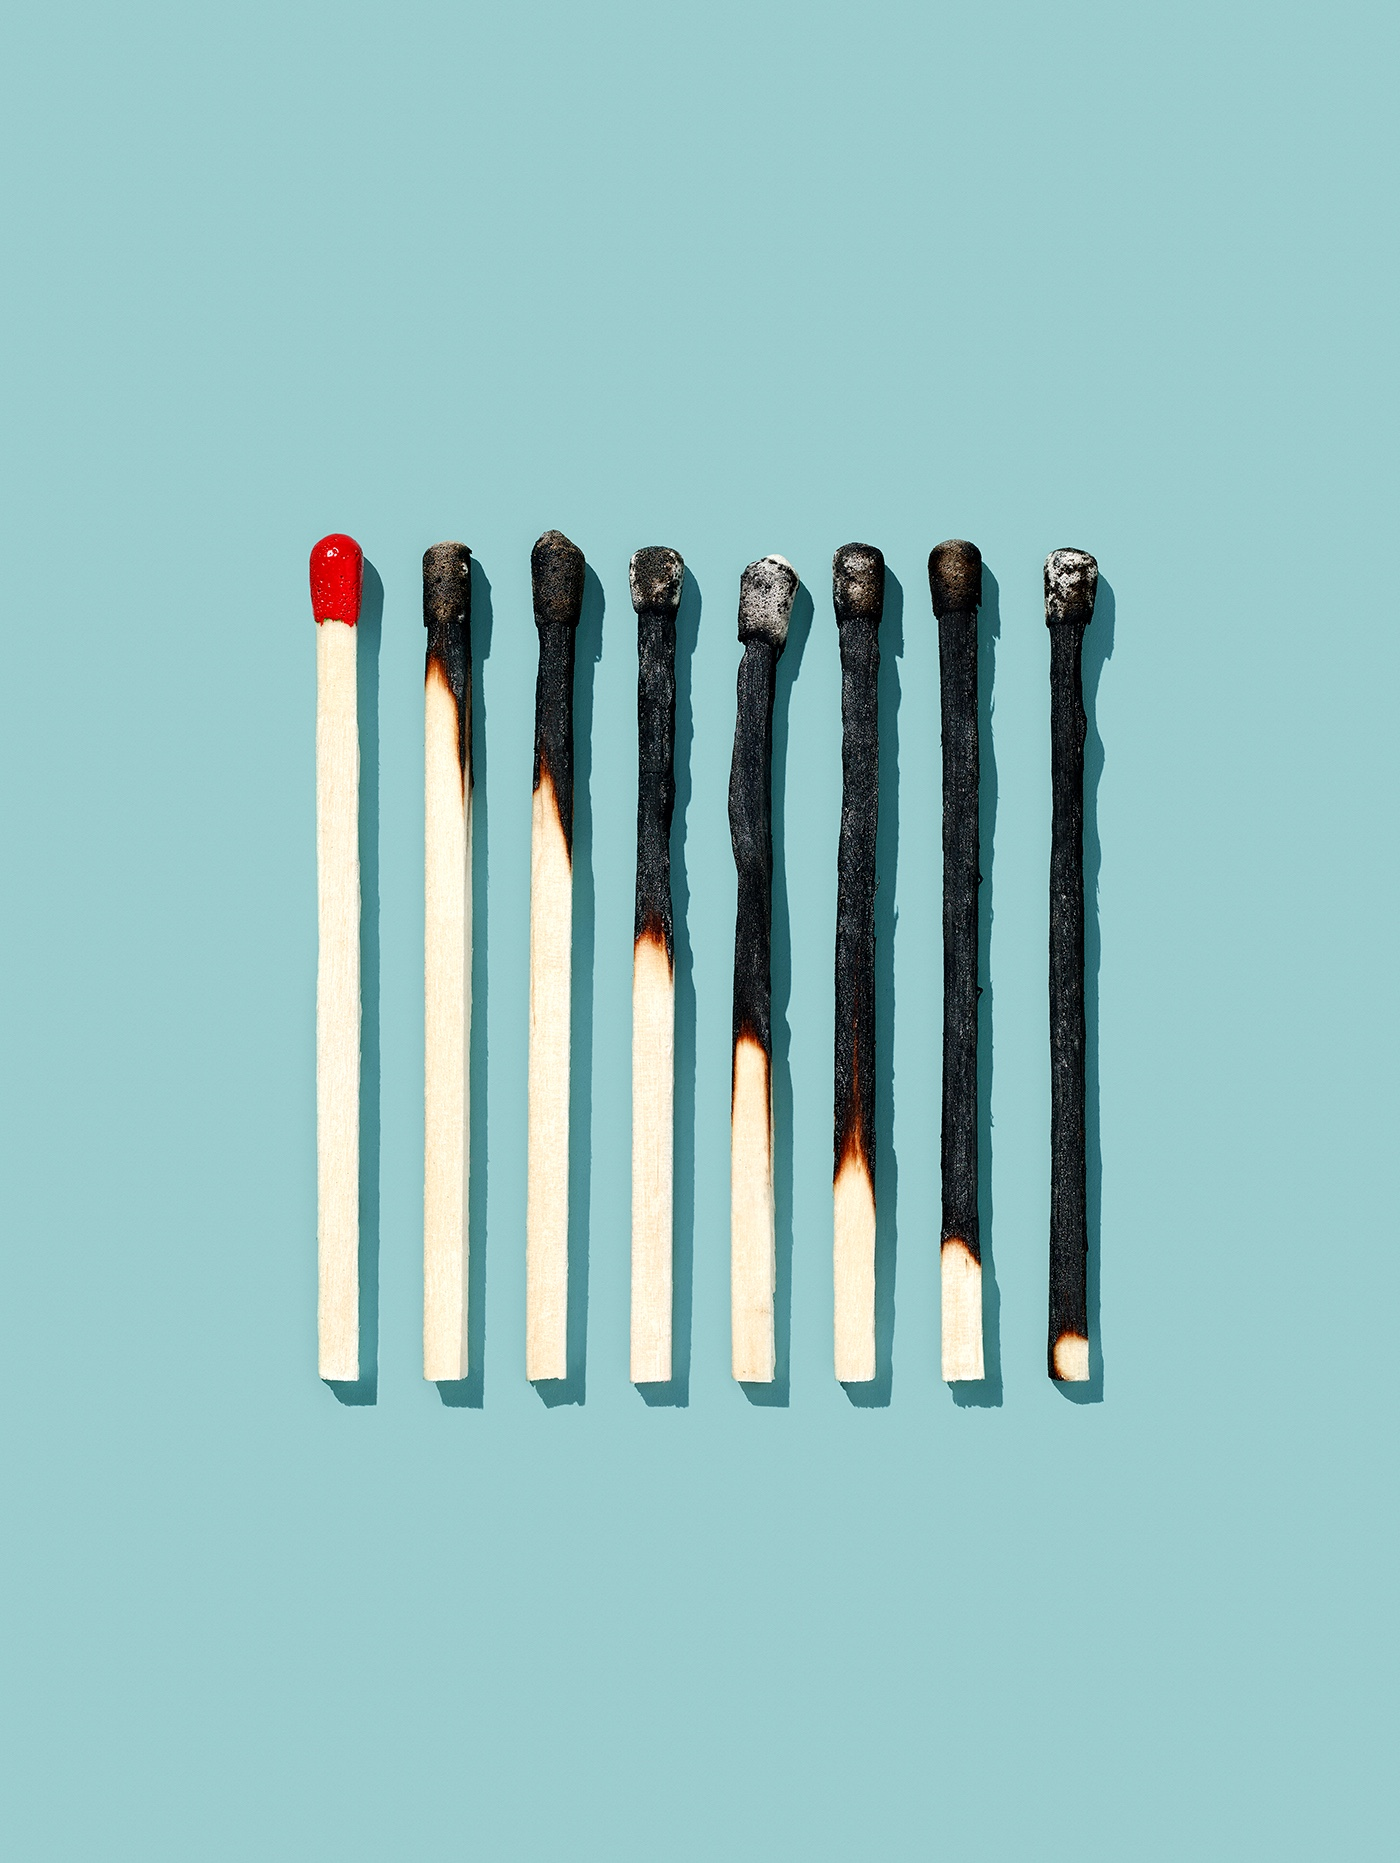 https://tickertapecdn.tdameritrade.com/assets/images/pages/md/Set of match sticks with the first being unused, as you move to the right they are further burned down, black and more withered